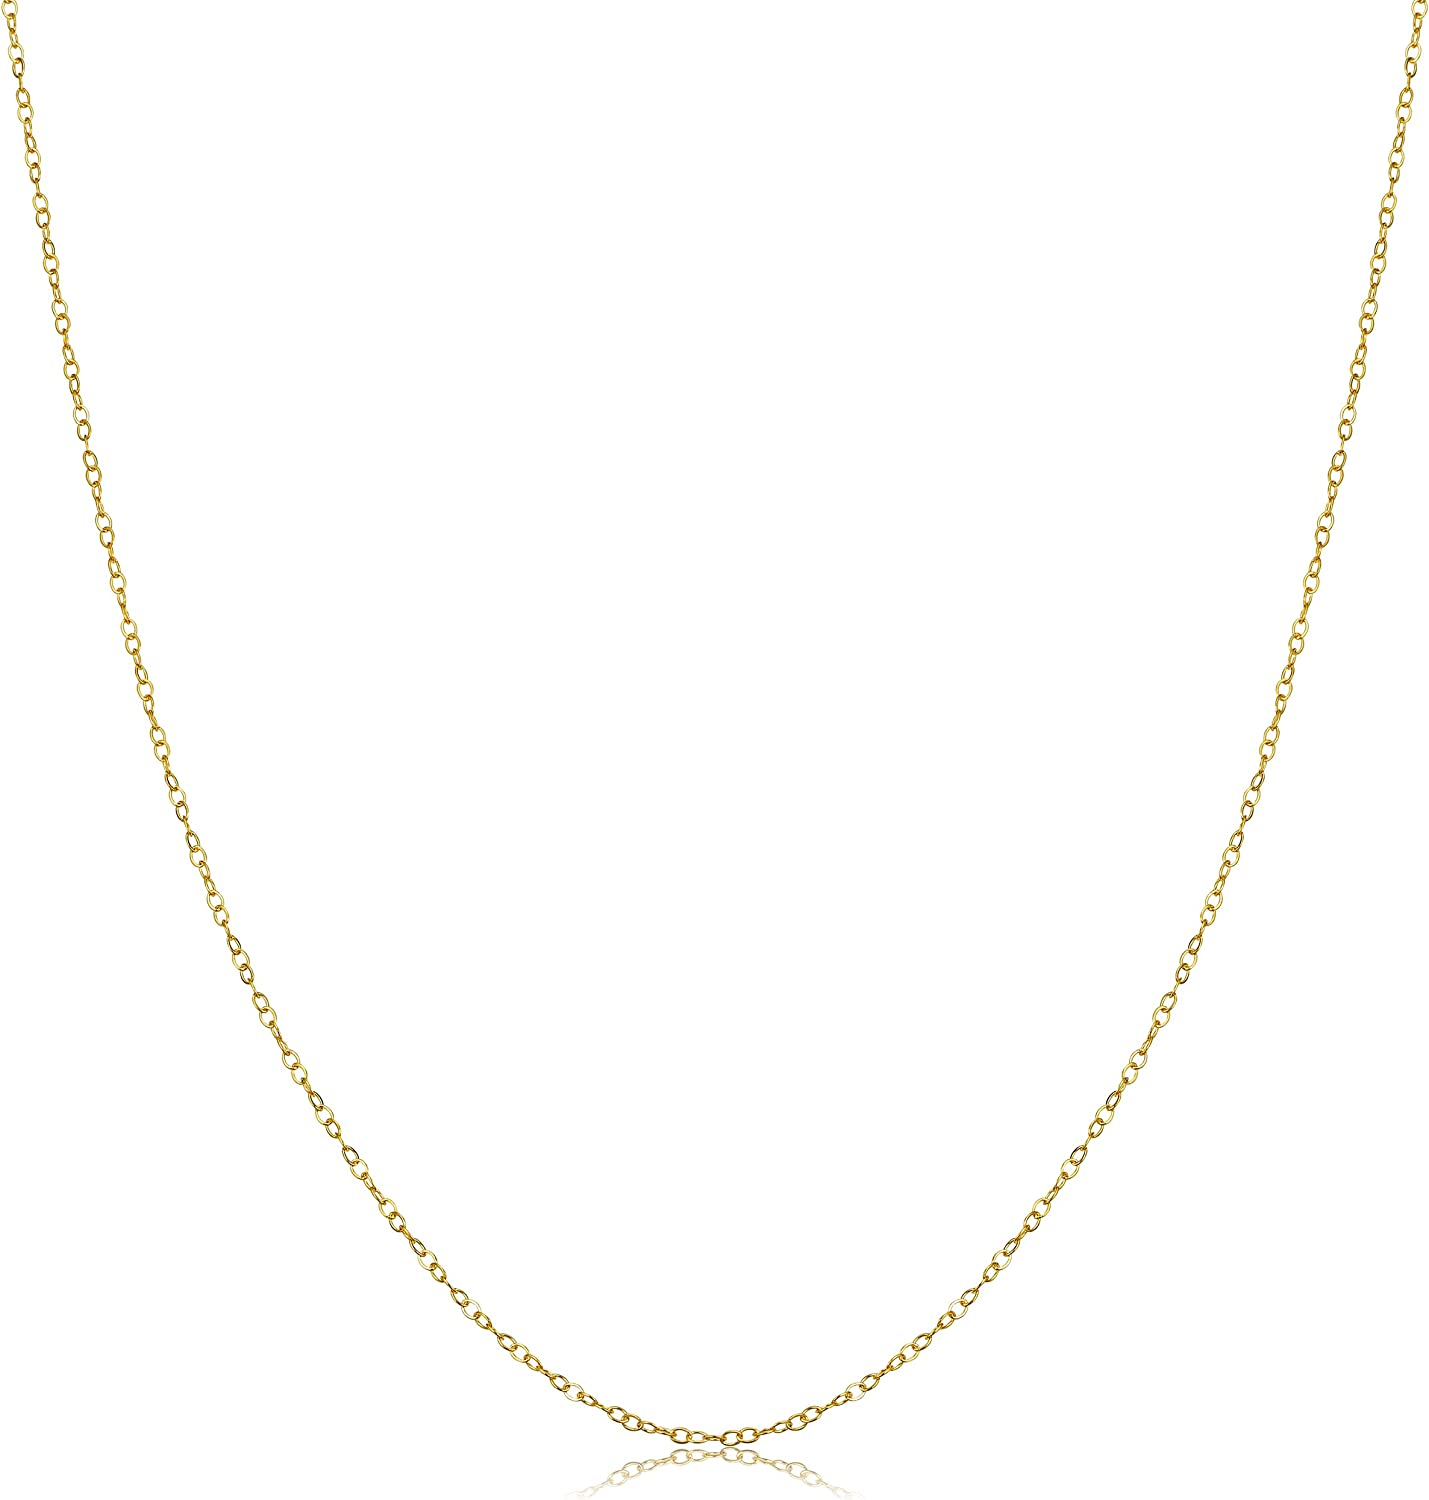 Kooljewelry 14k Yellow Gold...